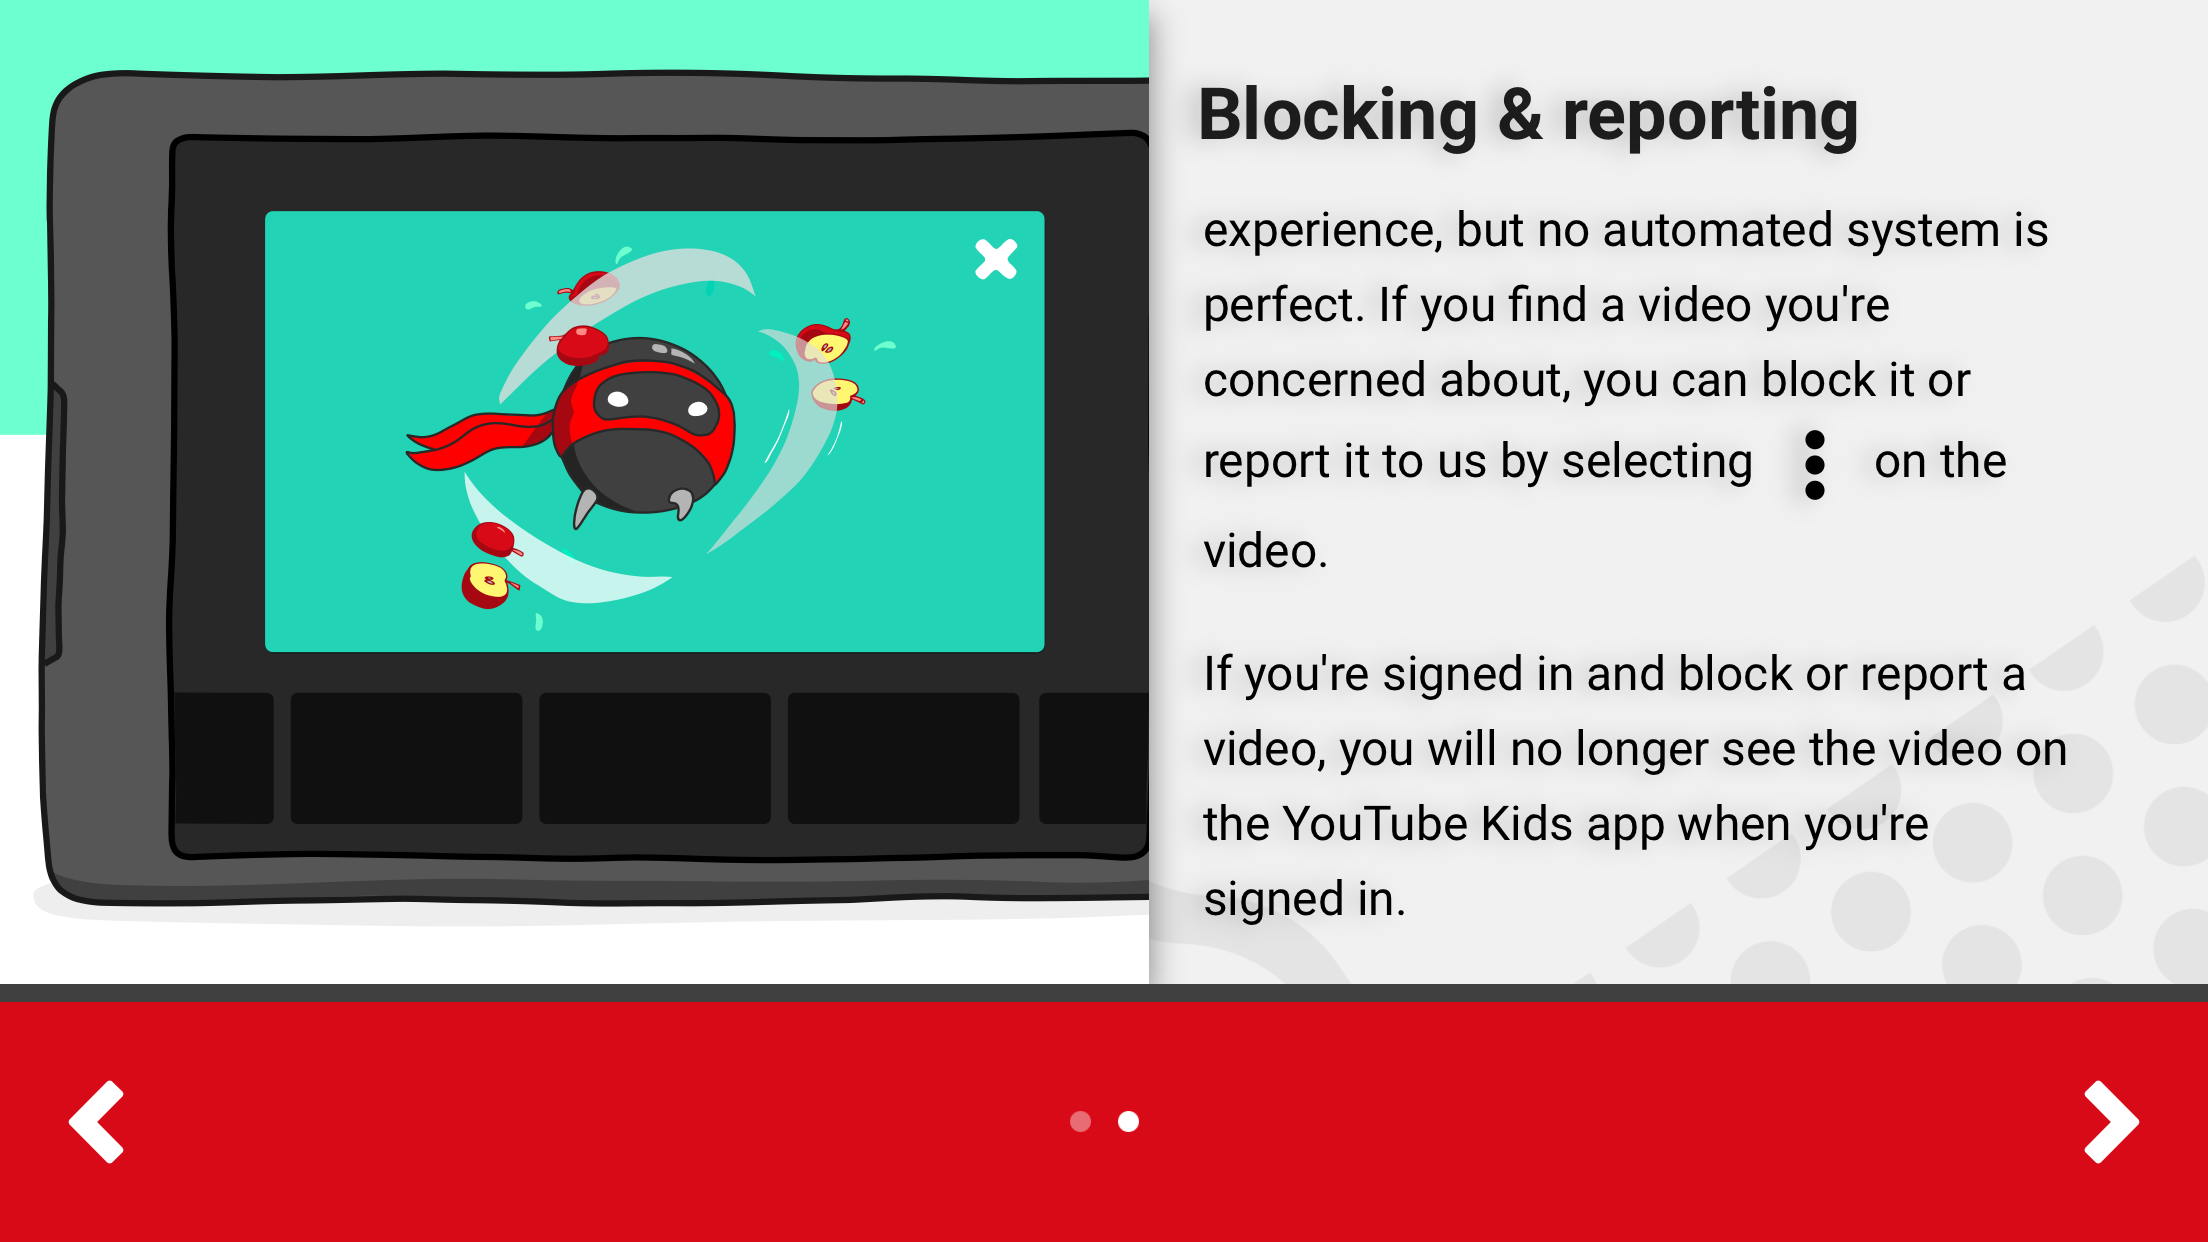 YouTube Kids has been a problem since 2015 — why did it take this